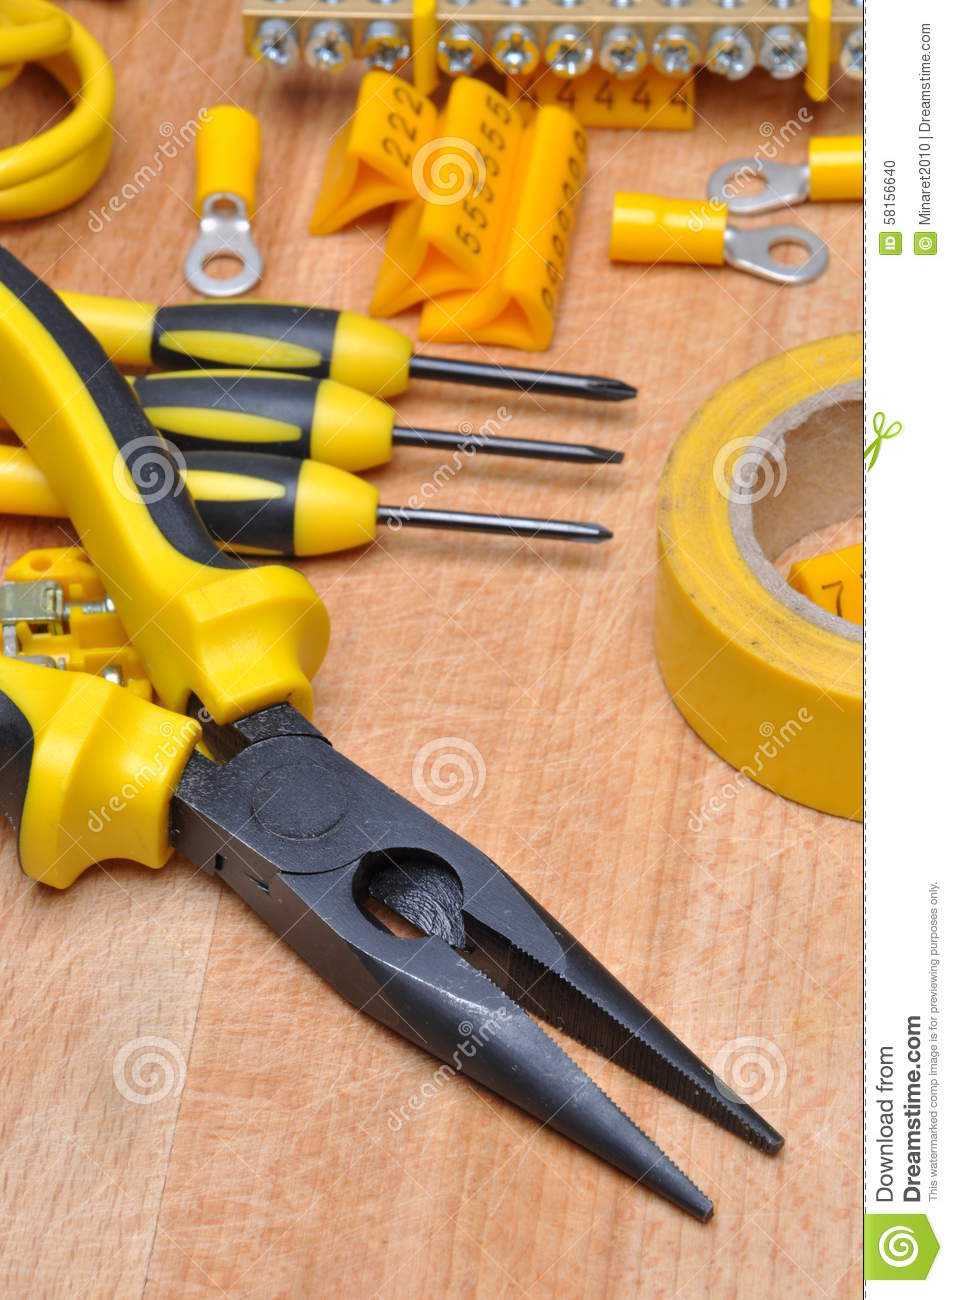 Tools and component for electrical installation